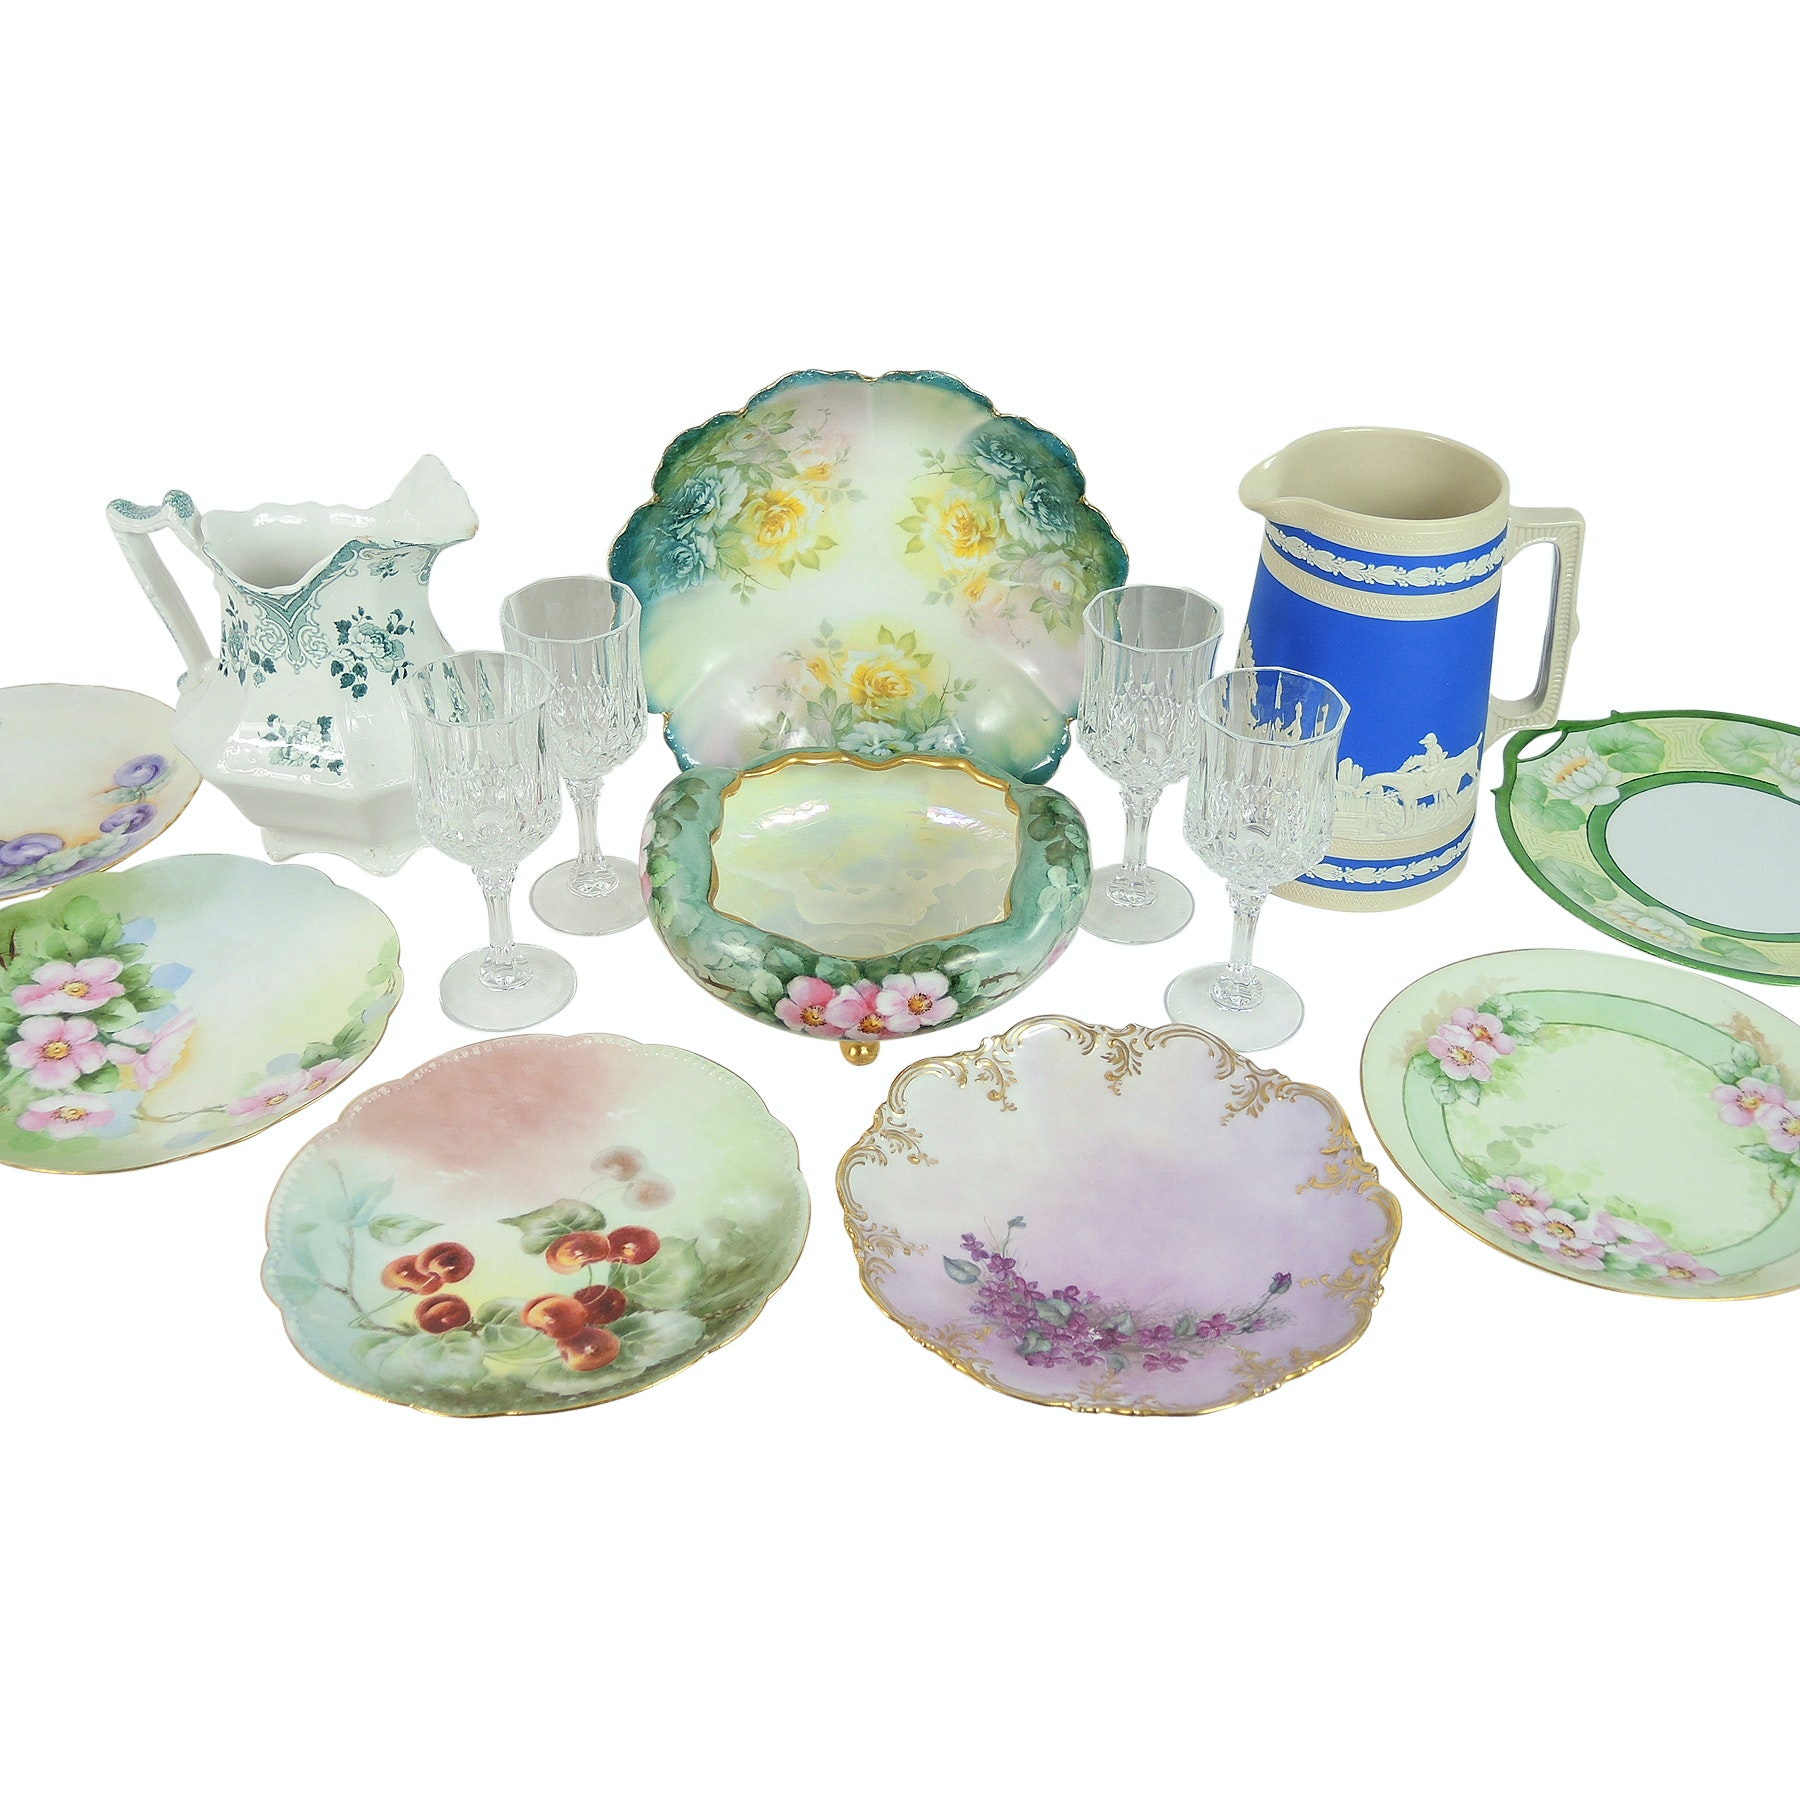 Hand-Painted Porcelain and China Collection with Copeland Spode Hunting Pitcher